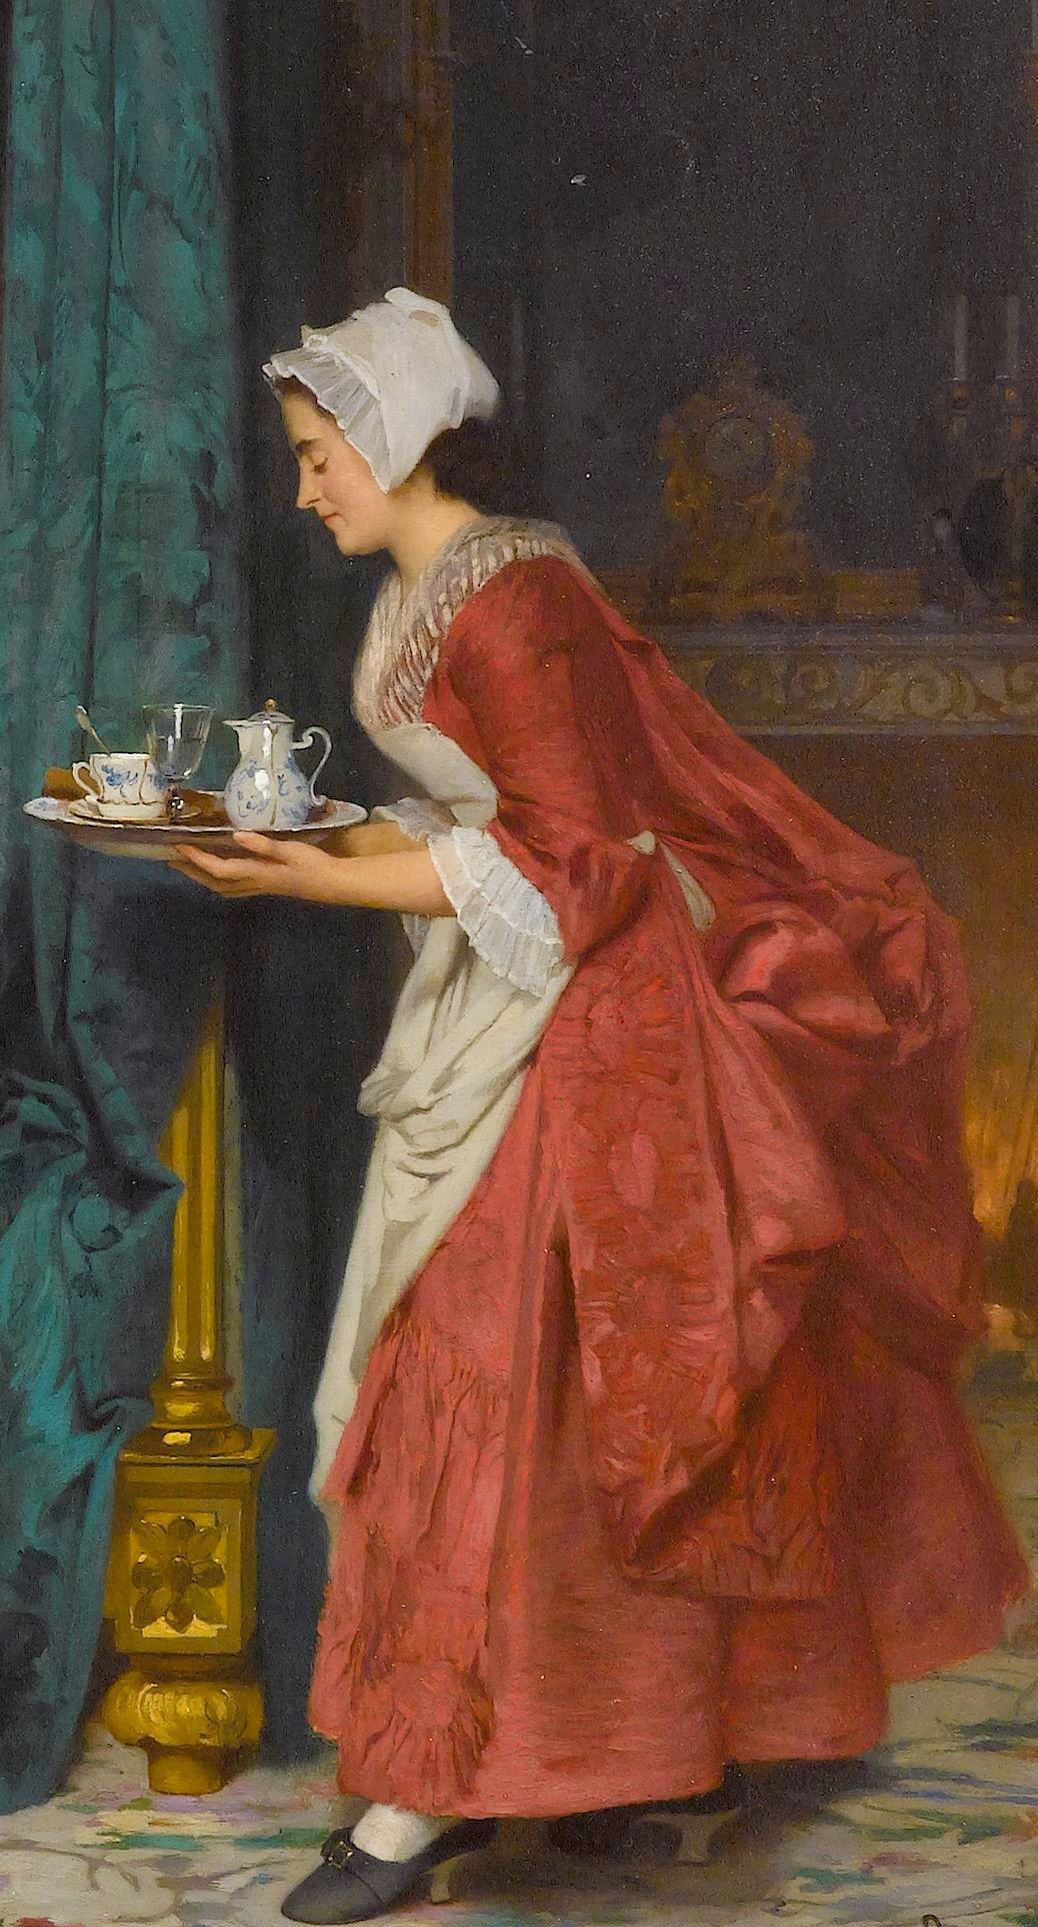 6a68d7a1 Detail of lady's maid bringing her mistress her morning chocolate from the  genre painting In the Morning (1865). Joseph Caraud